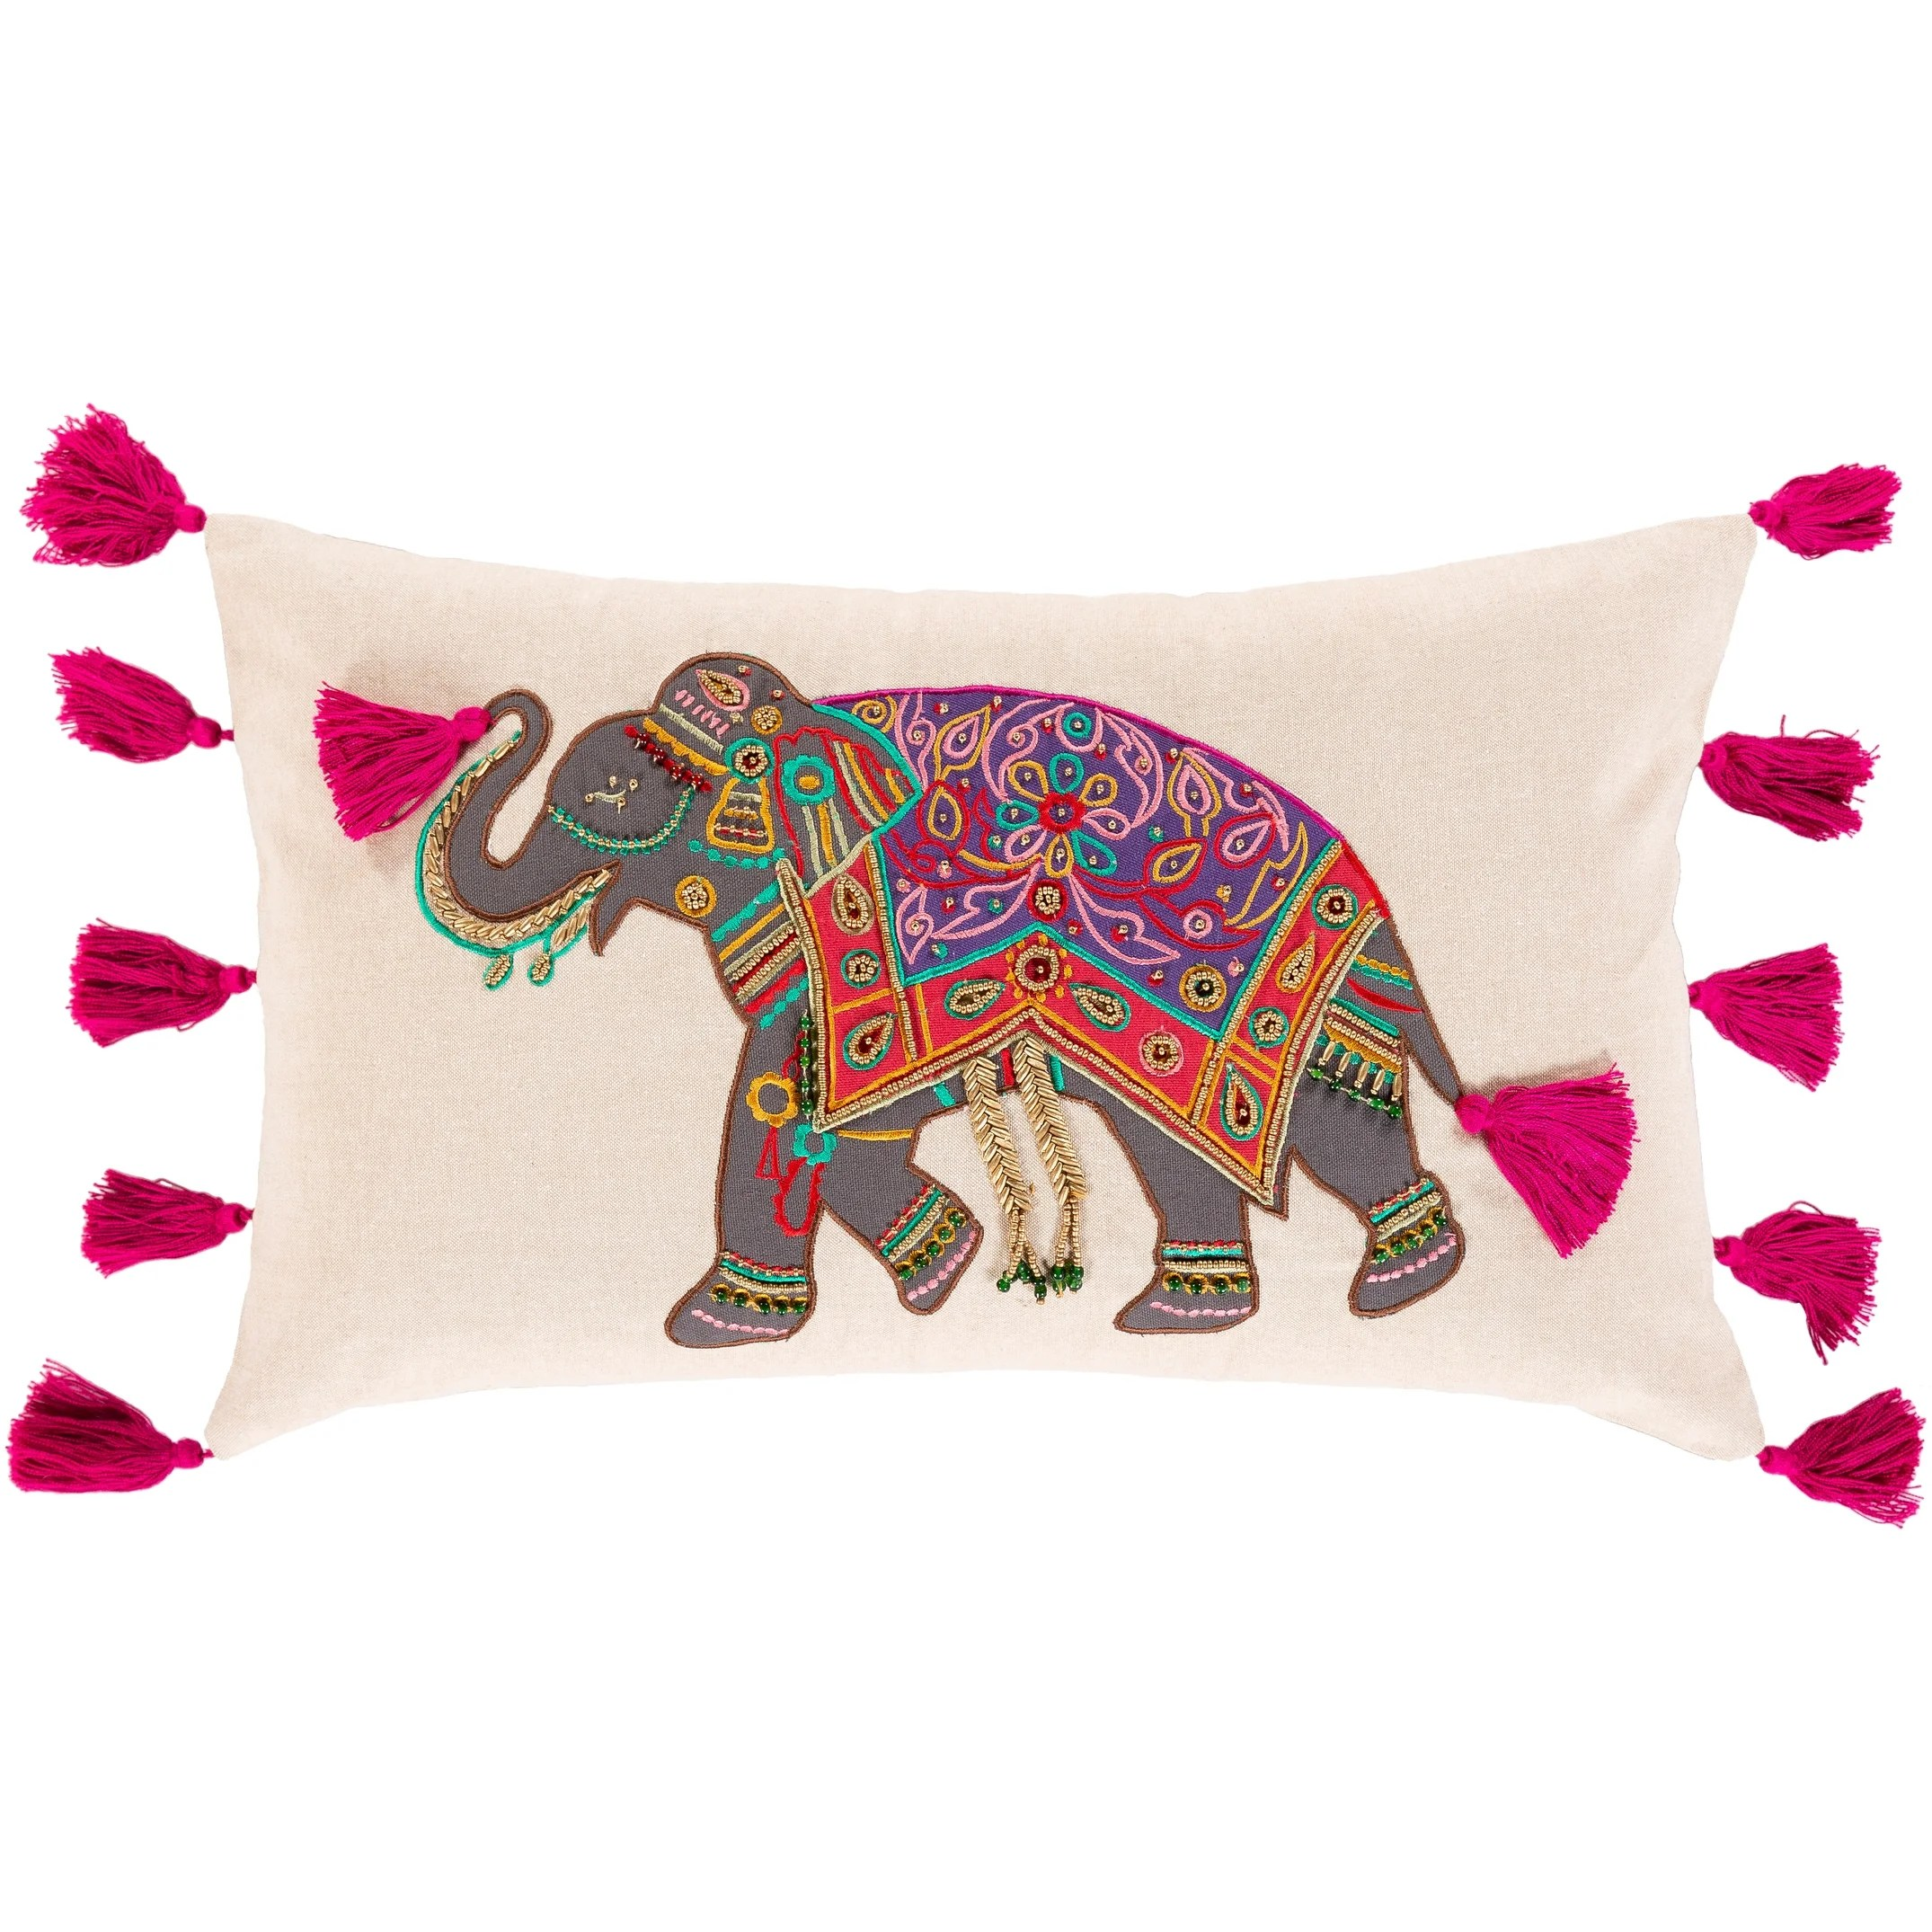 petra handwoven embroidered elephant throw pillow